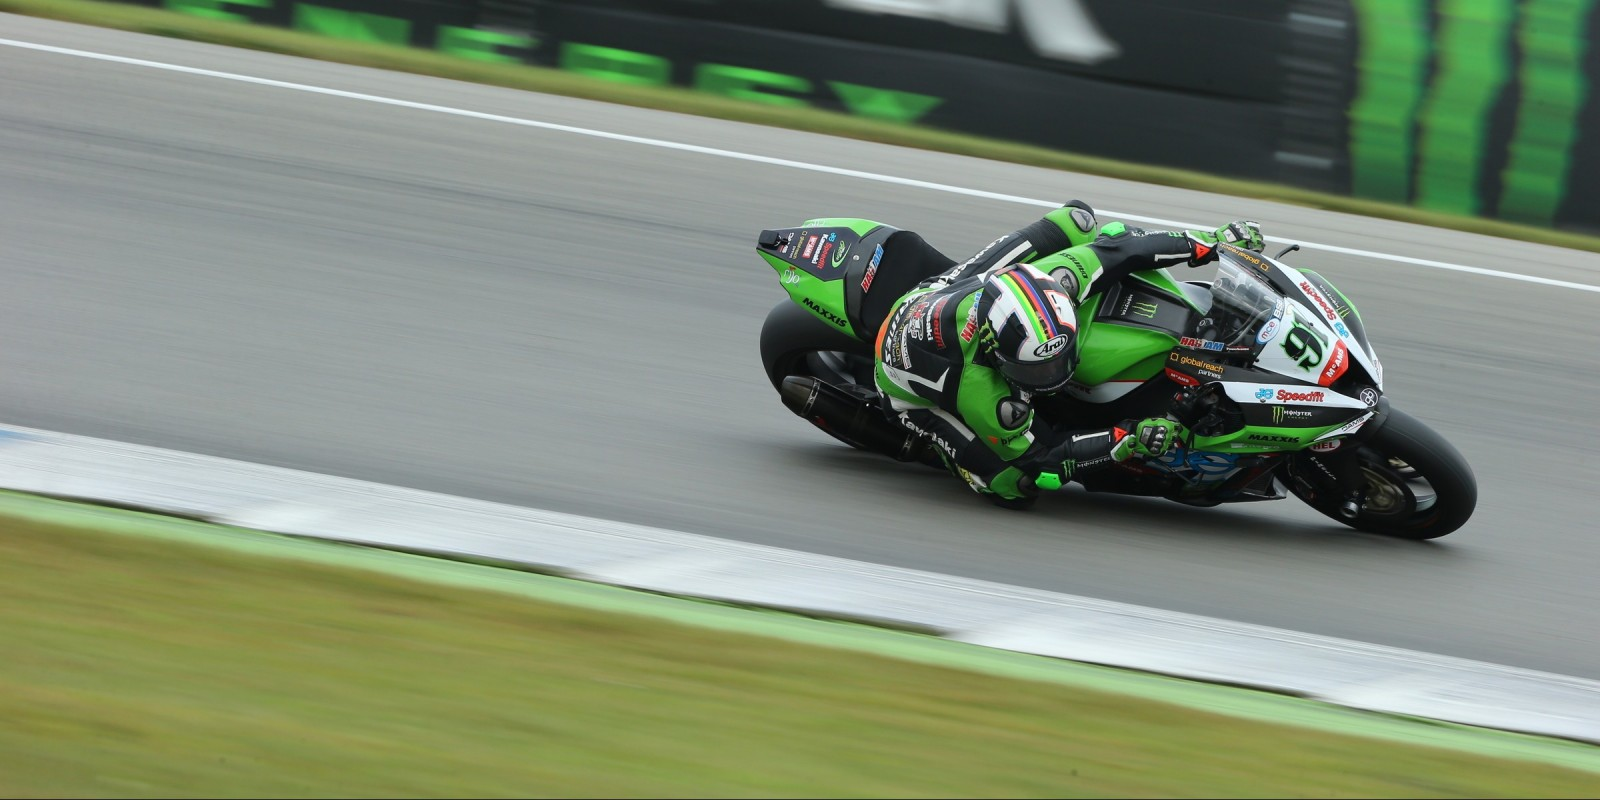 Images from Day 2 at BSB Assen